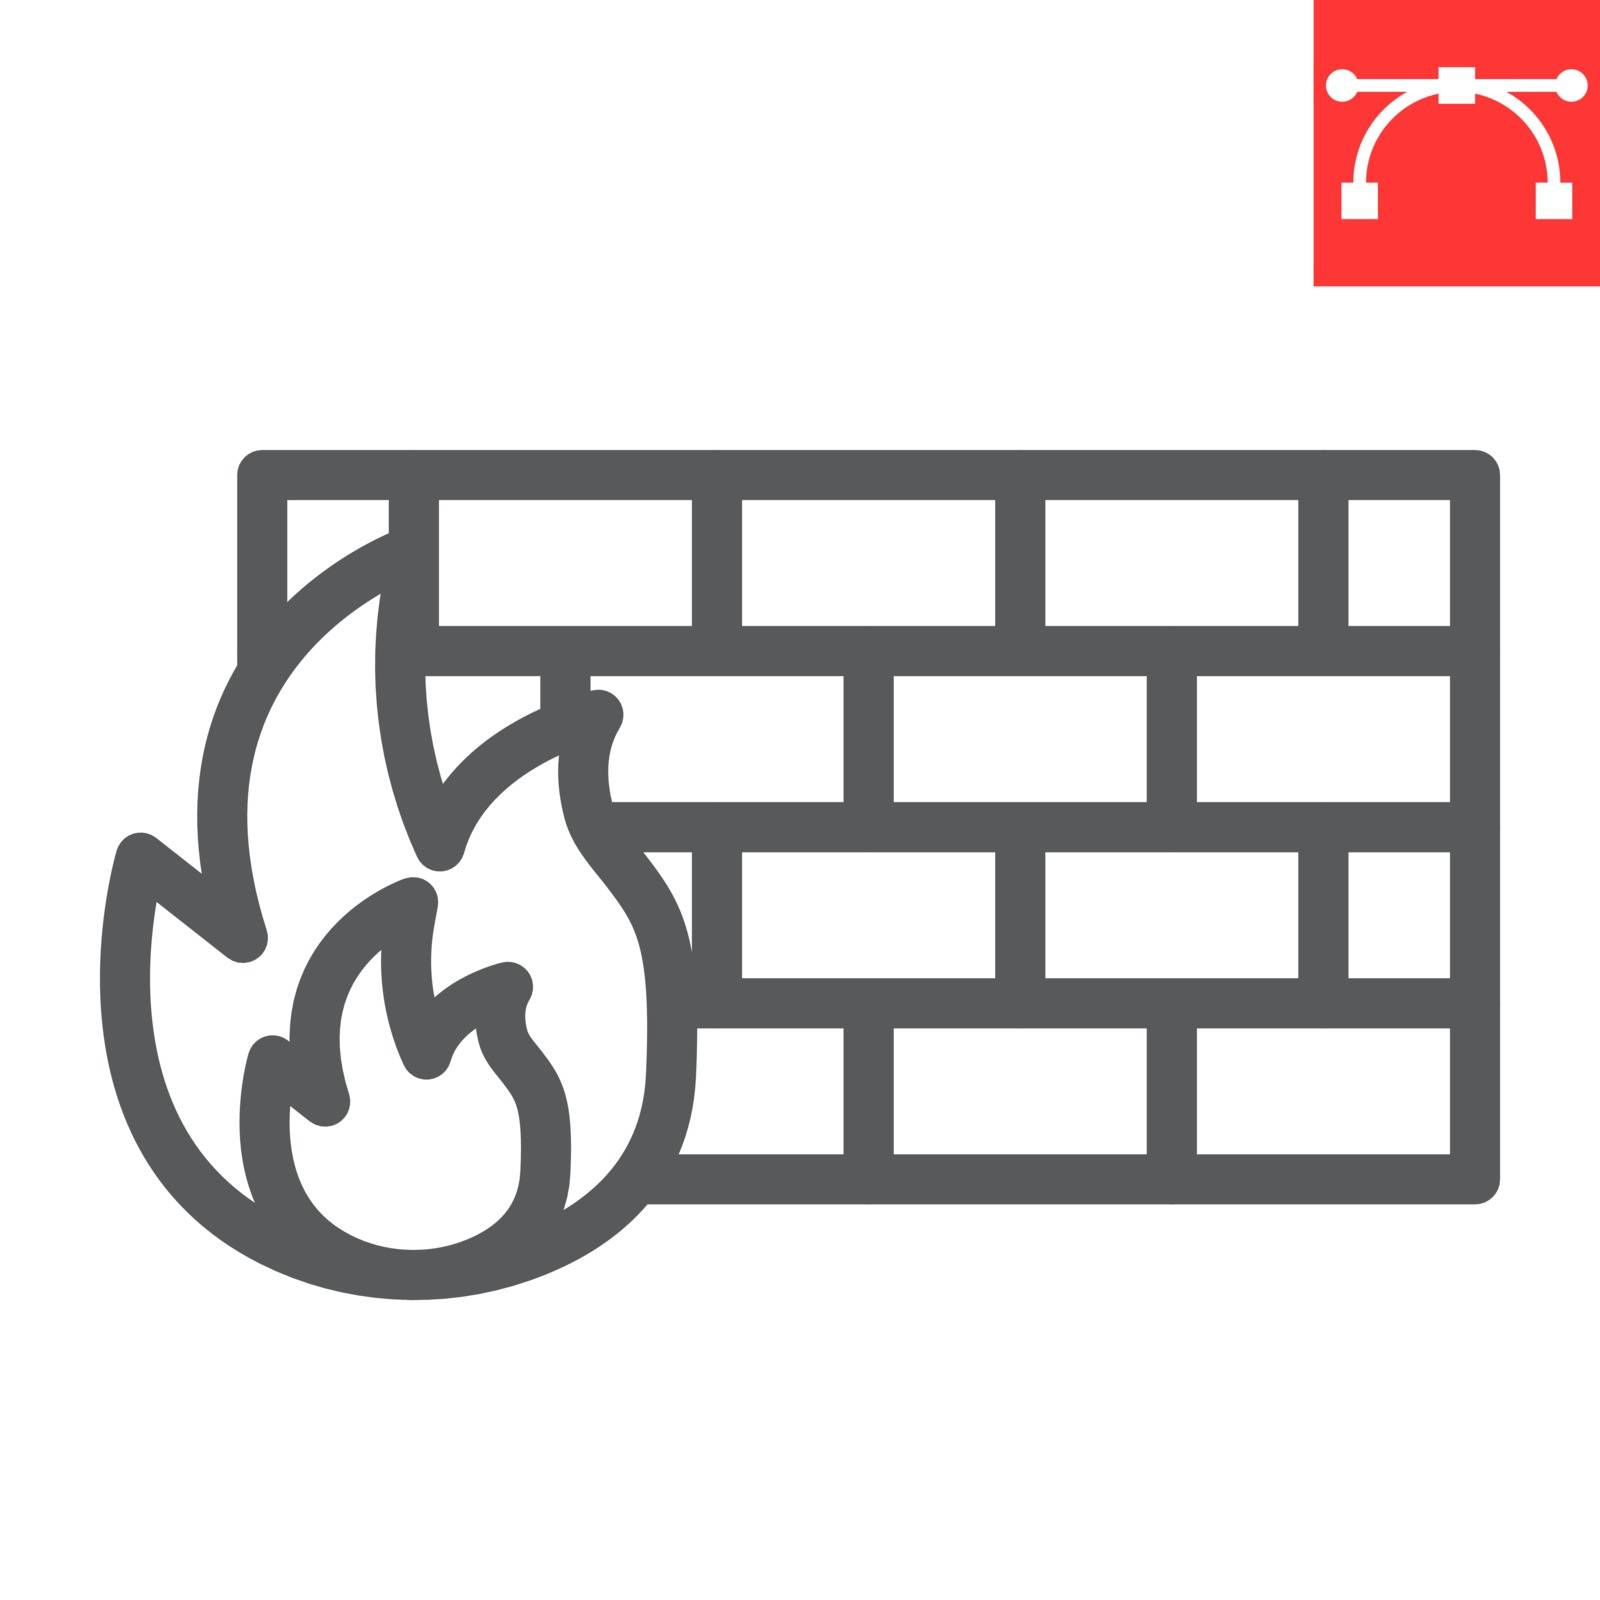 Firewall line icon, security and protection, flame sign vector graphics, editable stroke linear icon, eps 10